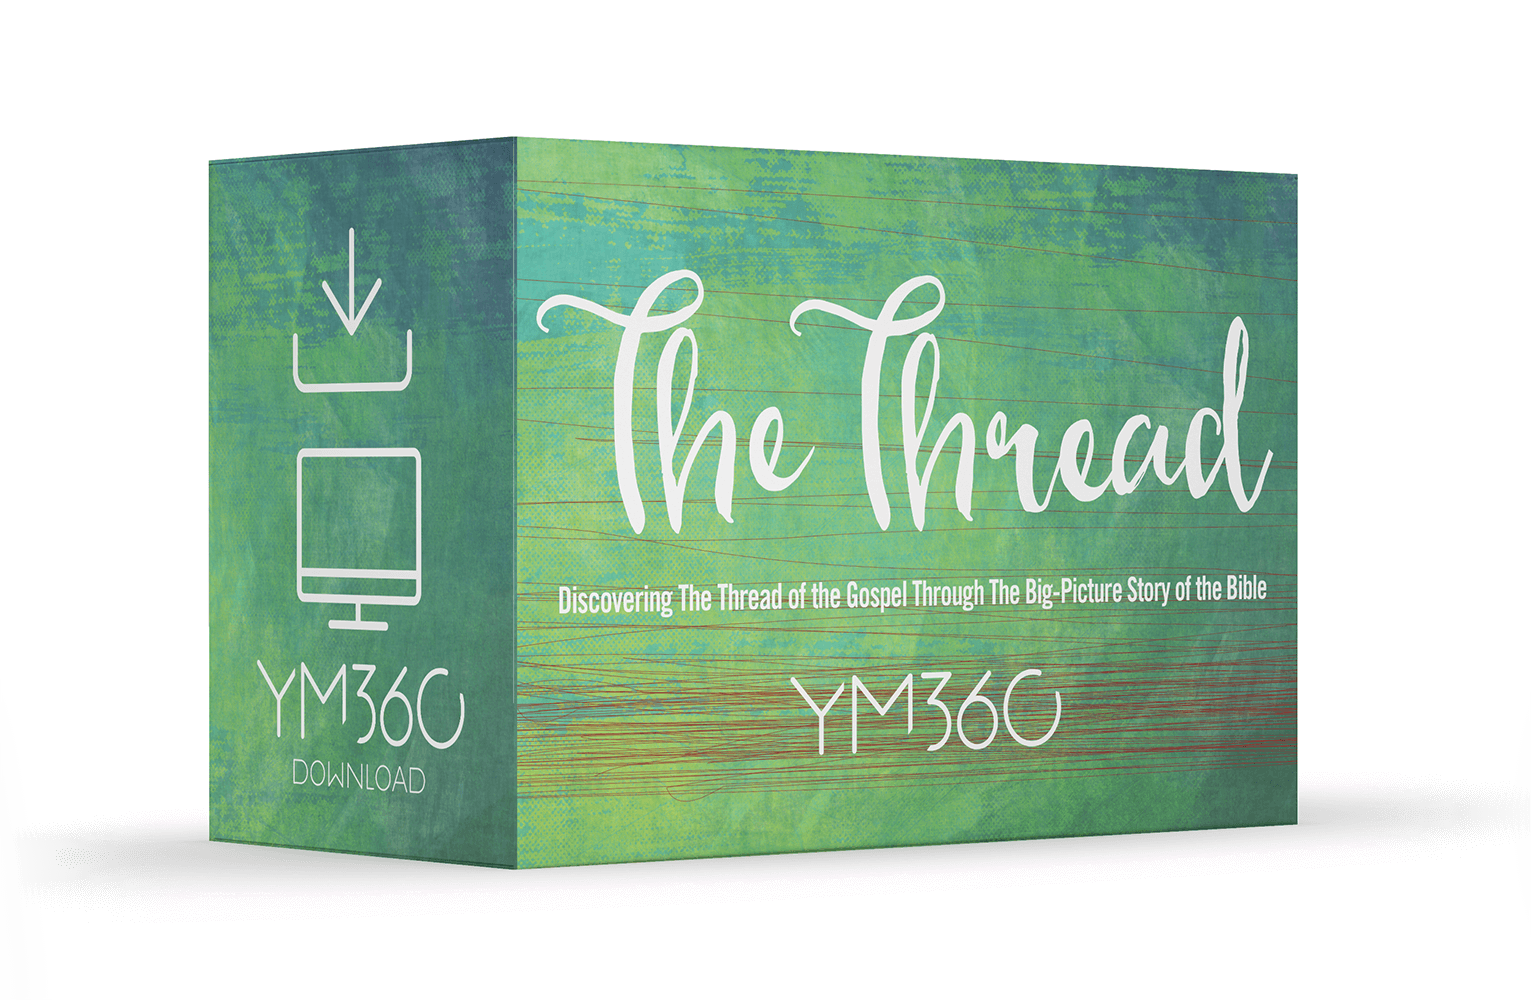 The Thread: Discovering the Thread of the Gospel Through the Big-Picture Story of the Bible